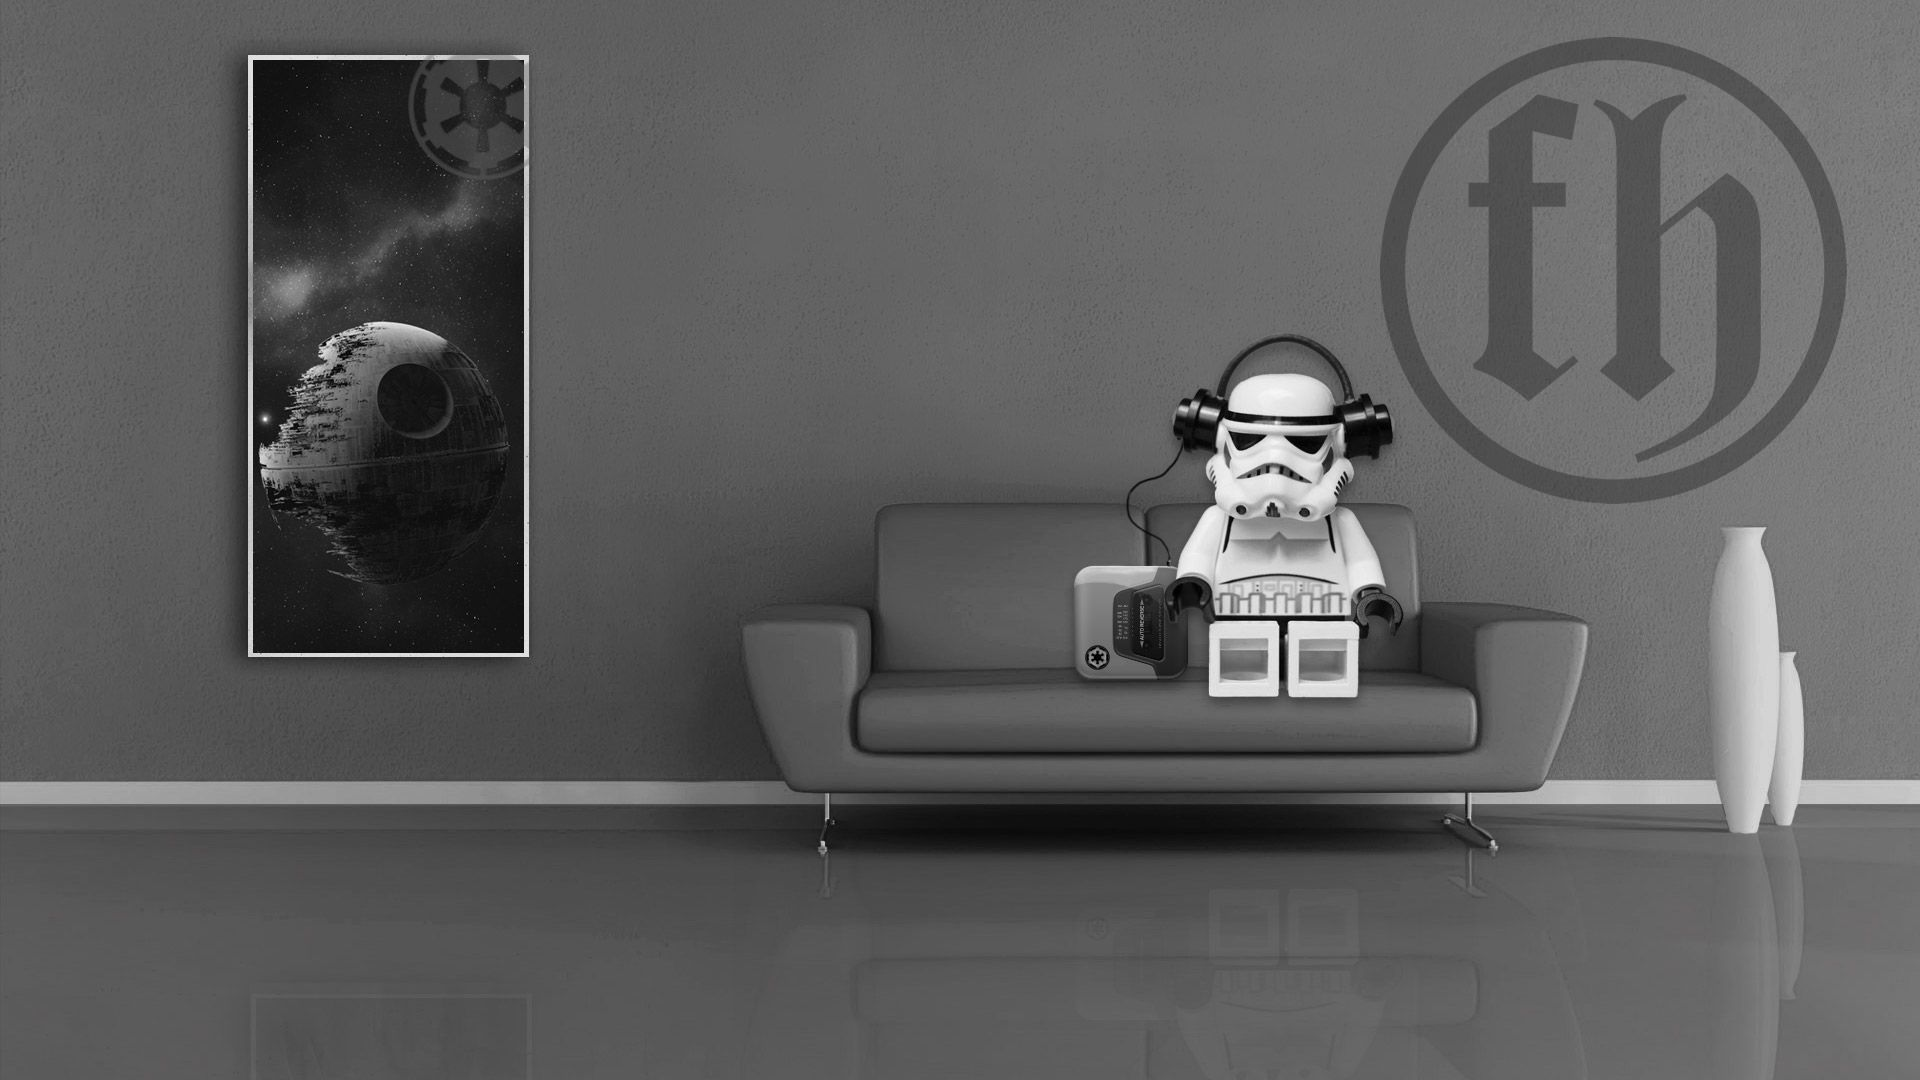 Because Lego Storm Trooper Chillaxin On The Couch That S Why Darth Vader Wallpaper Star Wars Wallpaper Stormtrooper